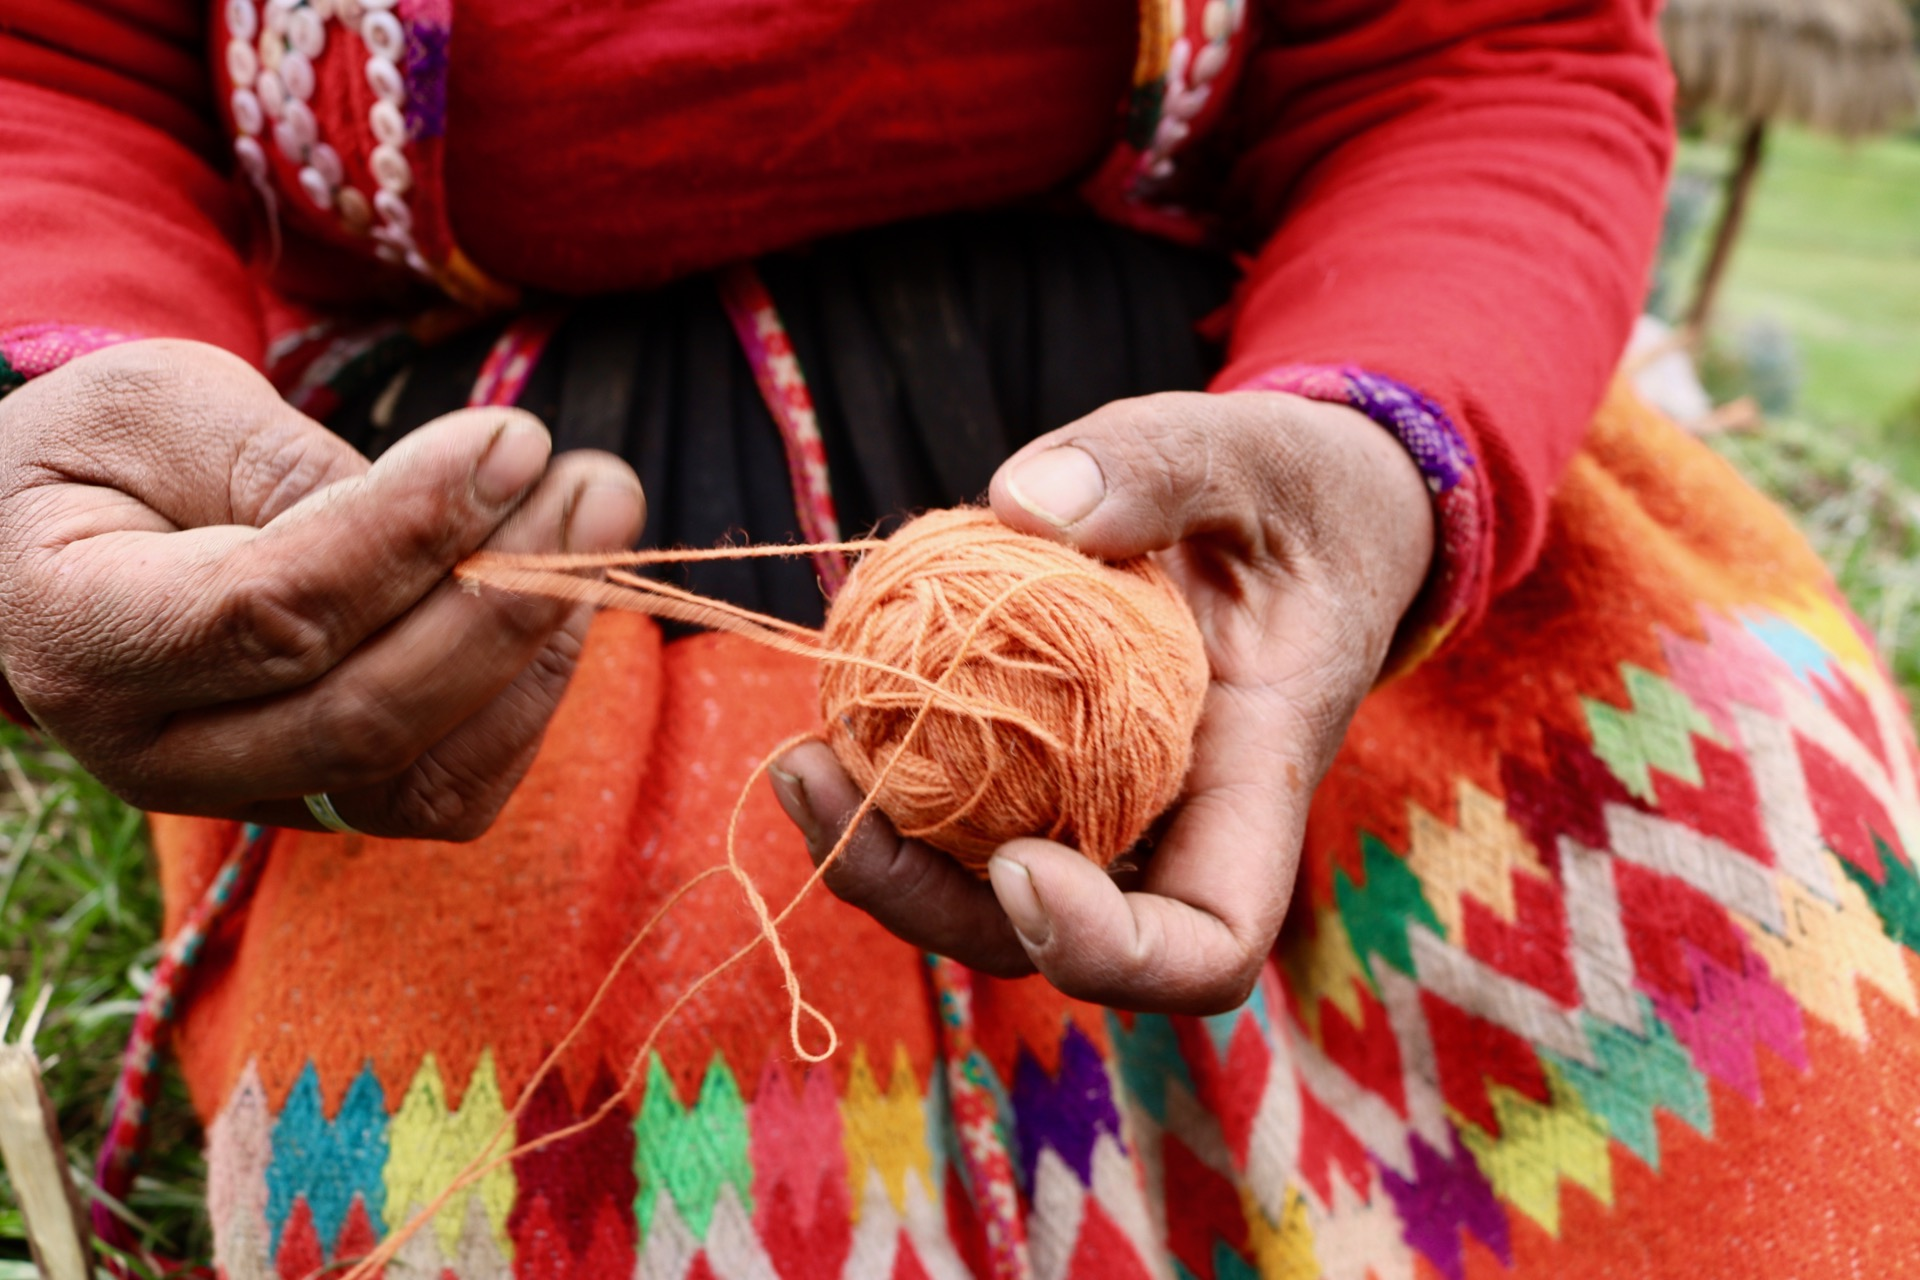 Learn how to weave in Patacancha -